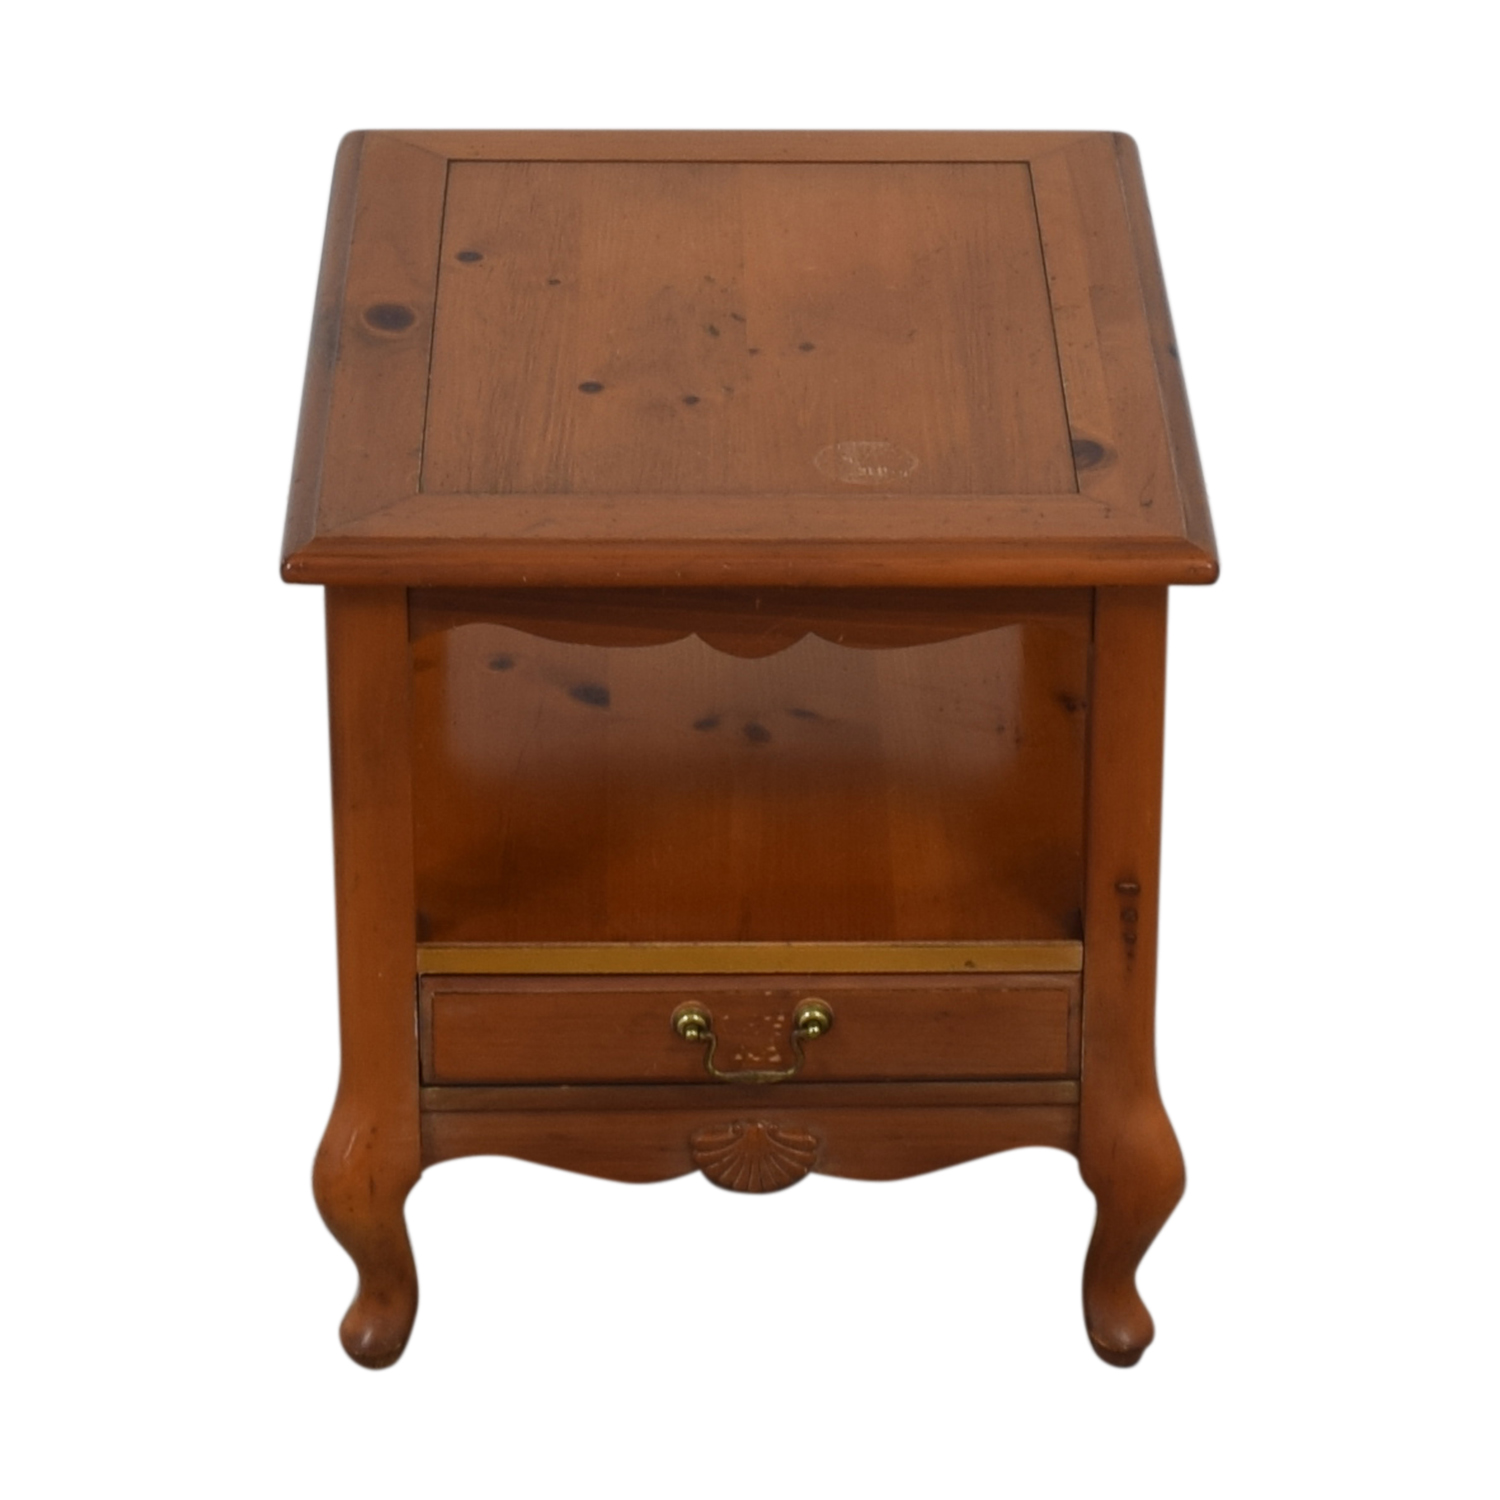 Ethan Allen Ethan Allen Single Drawer End Table price